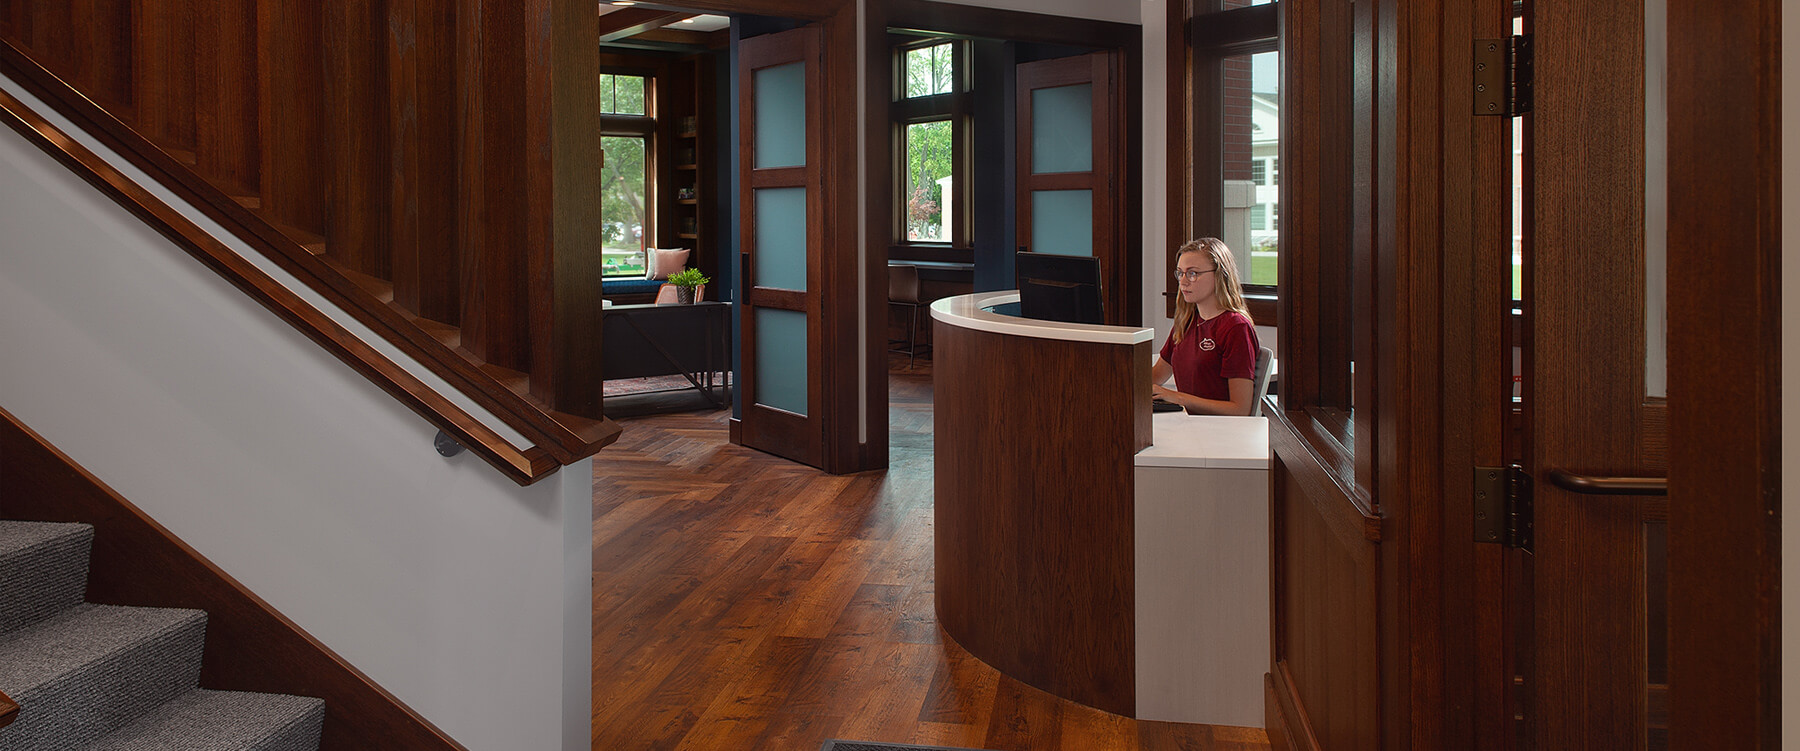 Hope College Ministries Center entry